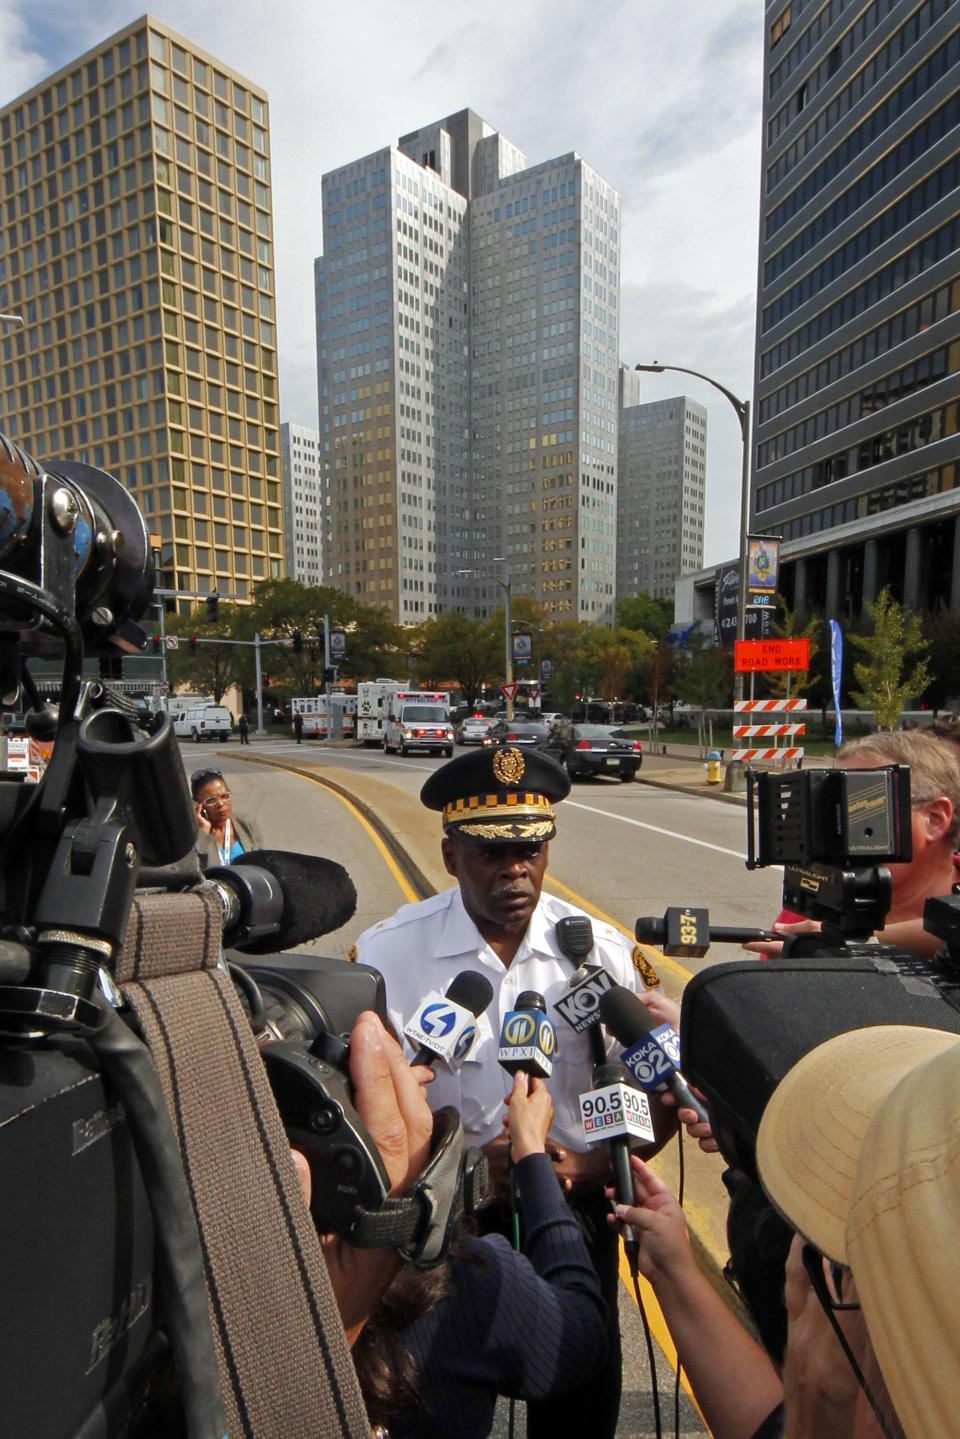 Pittsburgh Police Chief Nate Harper, center, briefs media outside the 3 Gateway Center building, rear center, in downtown Pittsburgh, Friday, Sept. 21, 2012. Police are trying to negotiate with a man claiming to have a bomb and a gun on the 16th floor of the 3 Gateway Center building. (AP Photo/Gene J. Puskar)